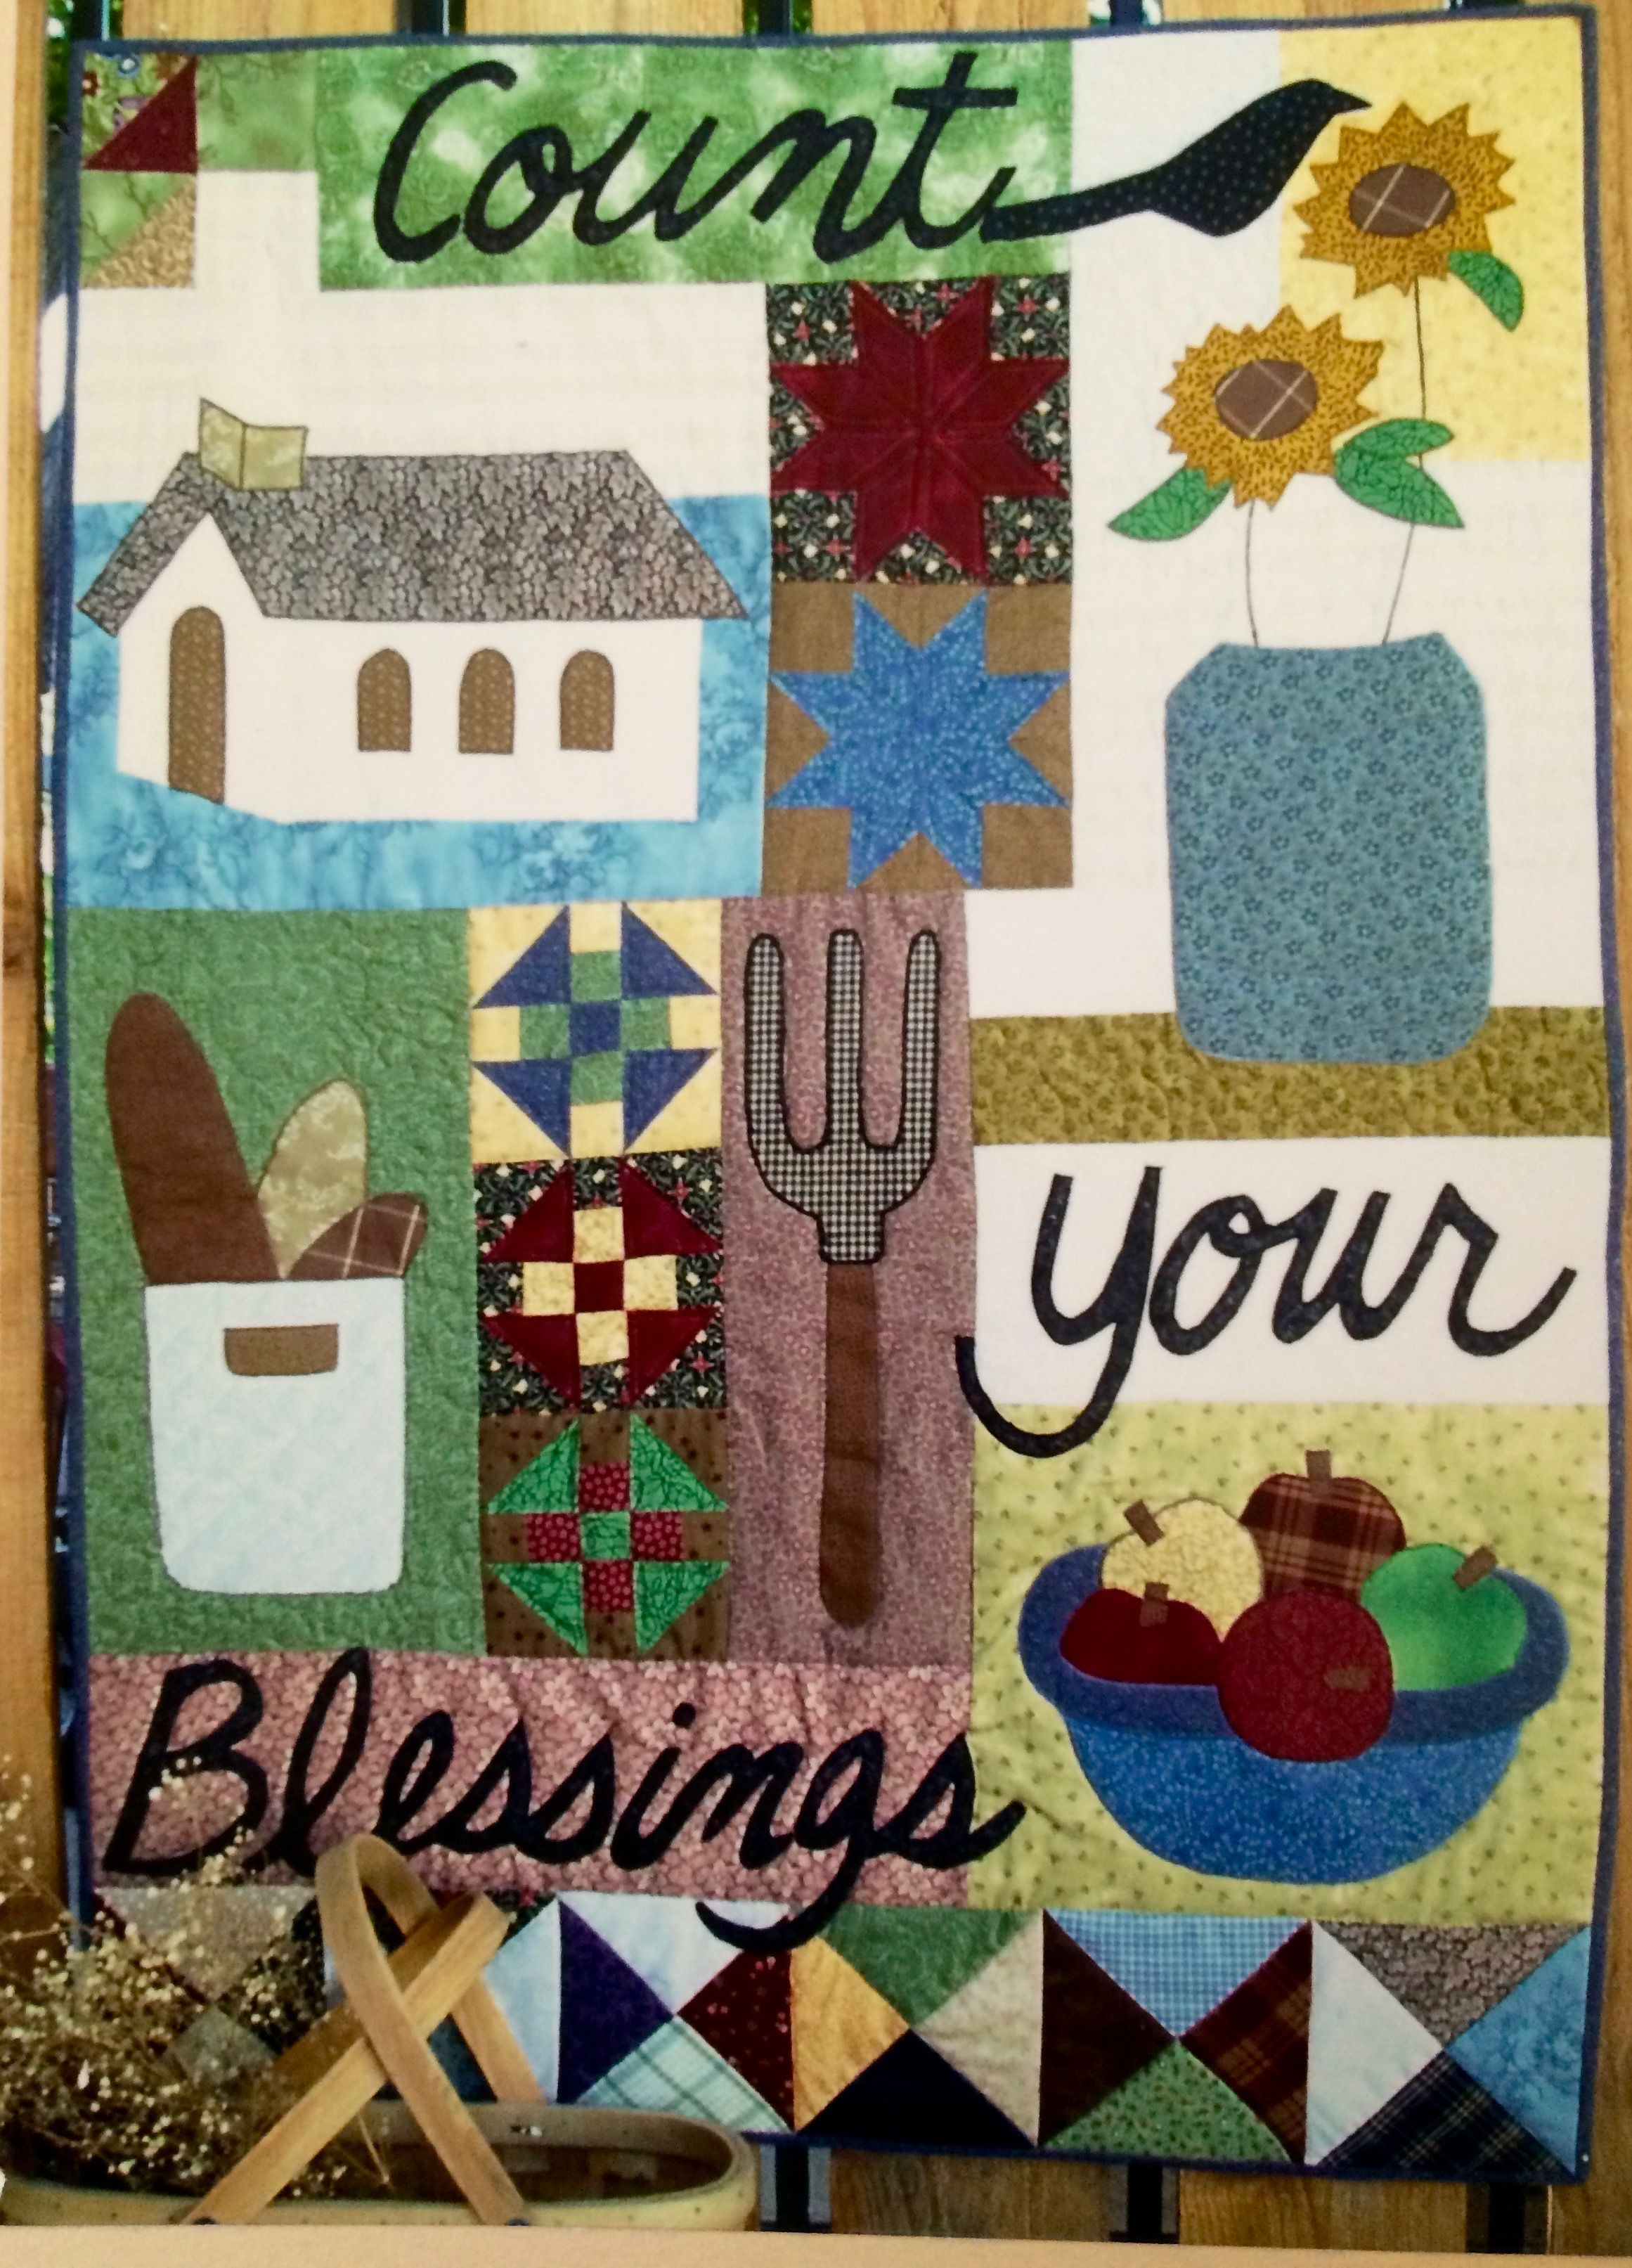 Count Your Blessings country quilt pattern - an original design by ... : country quilts patterns - Adamdwight.com